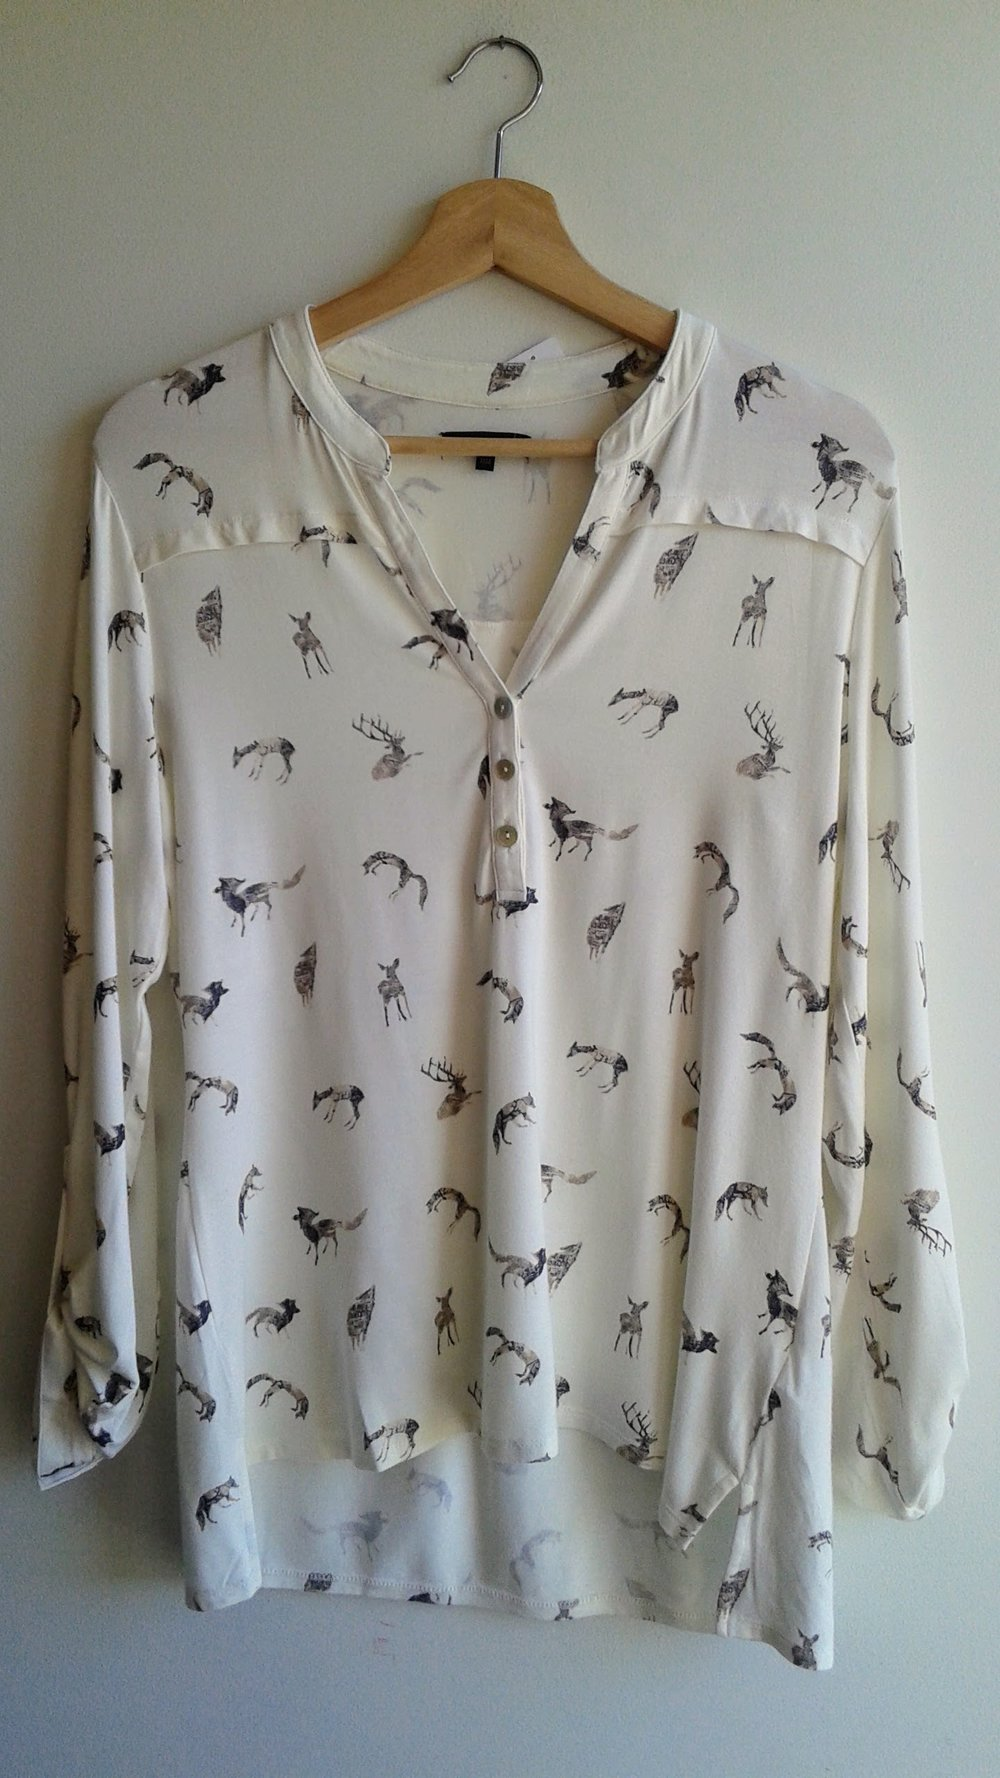 RW & Co top; Size M, $28